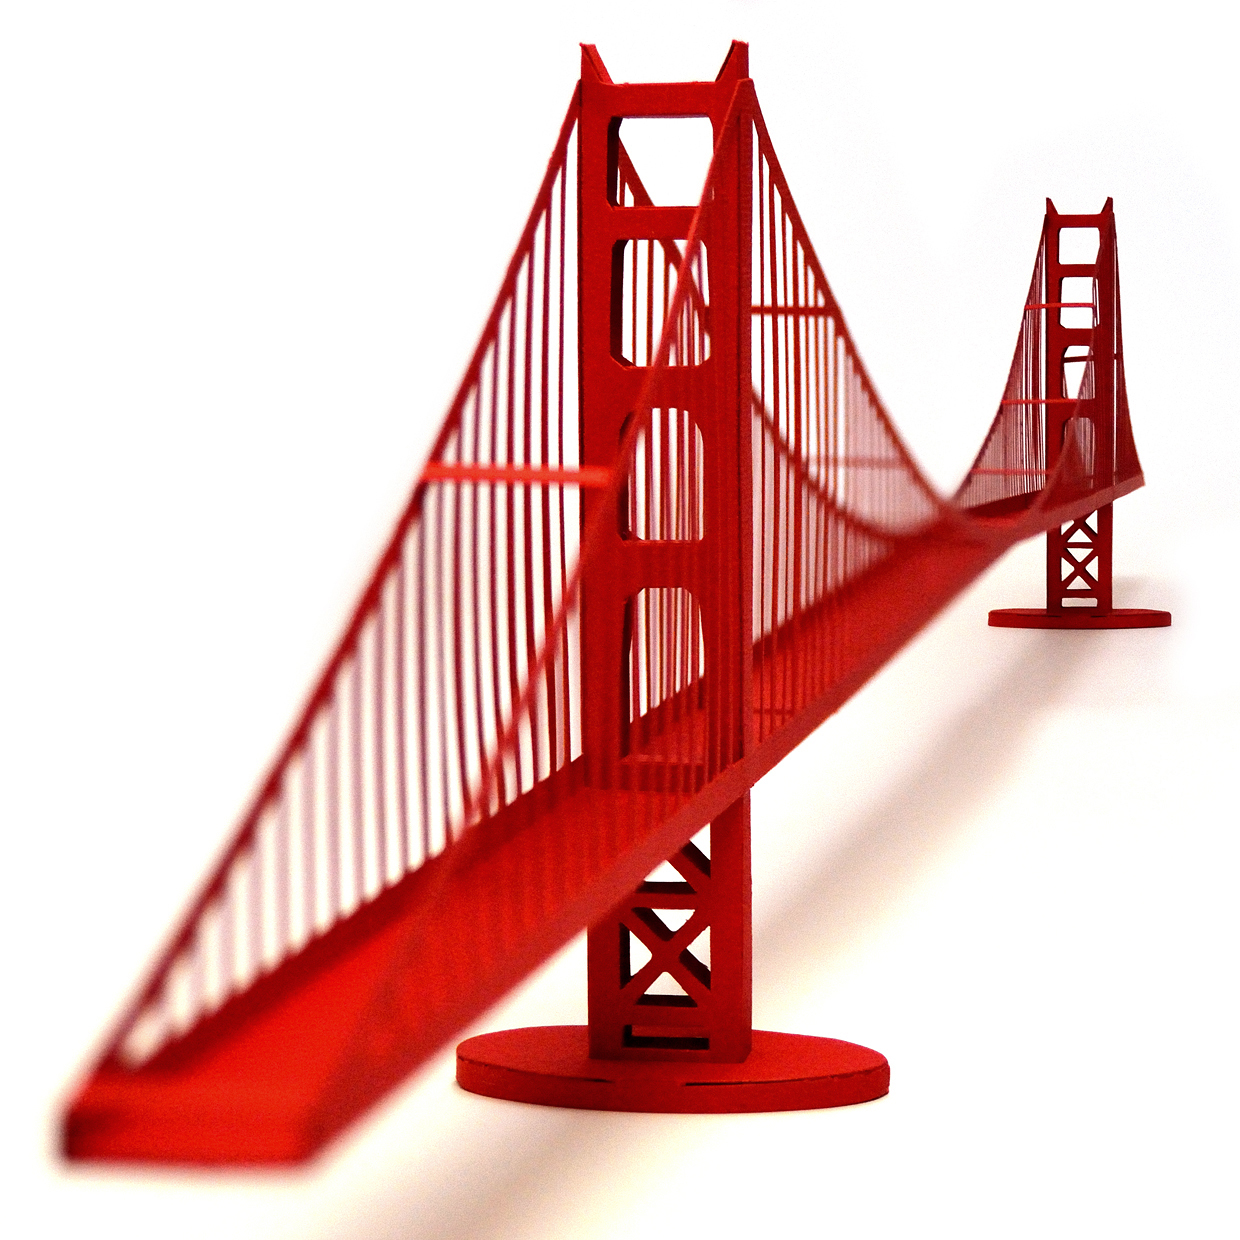 Golden gate bridge icon clipart.